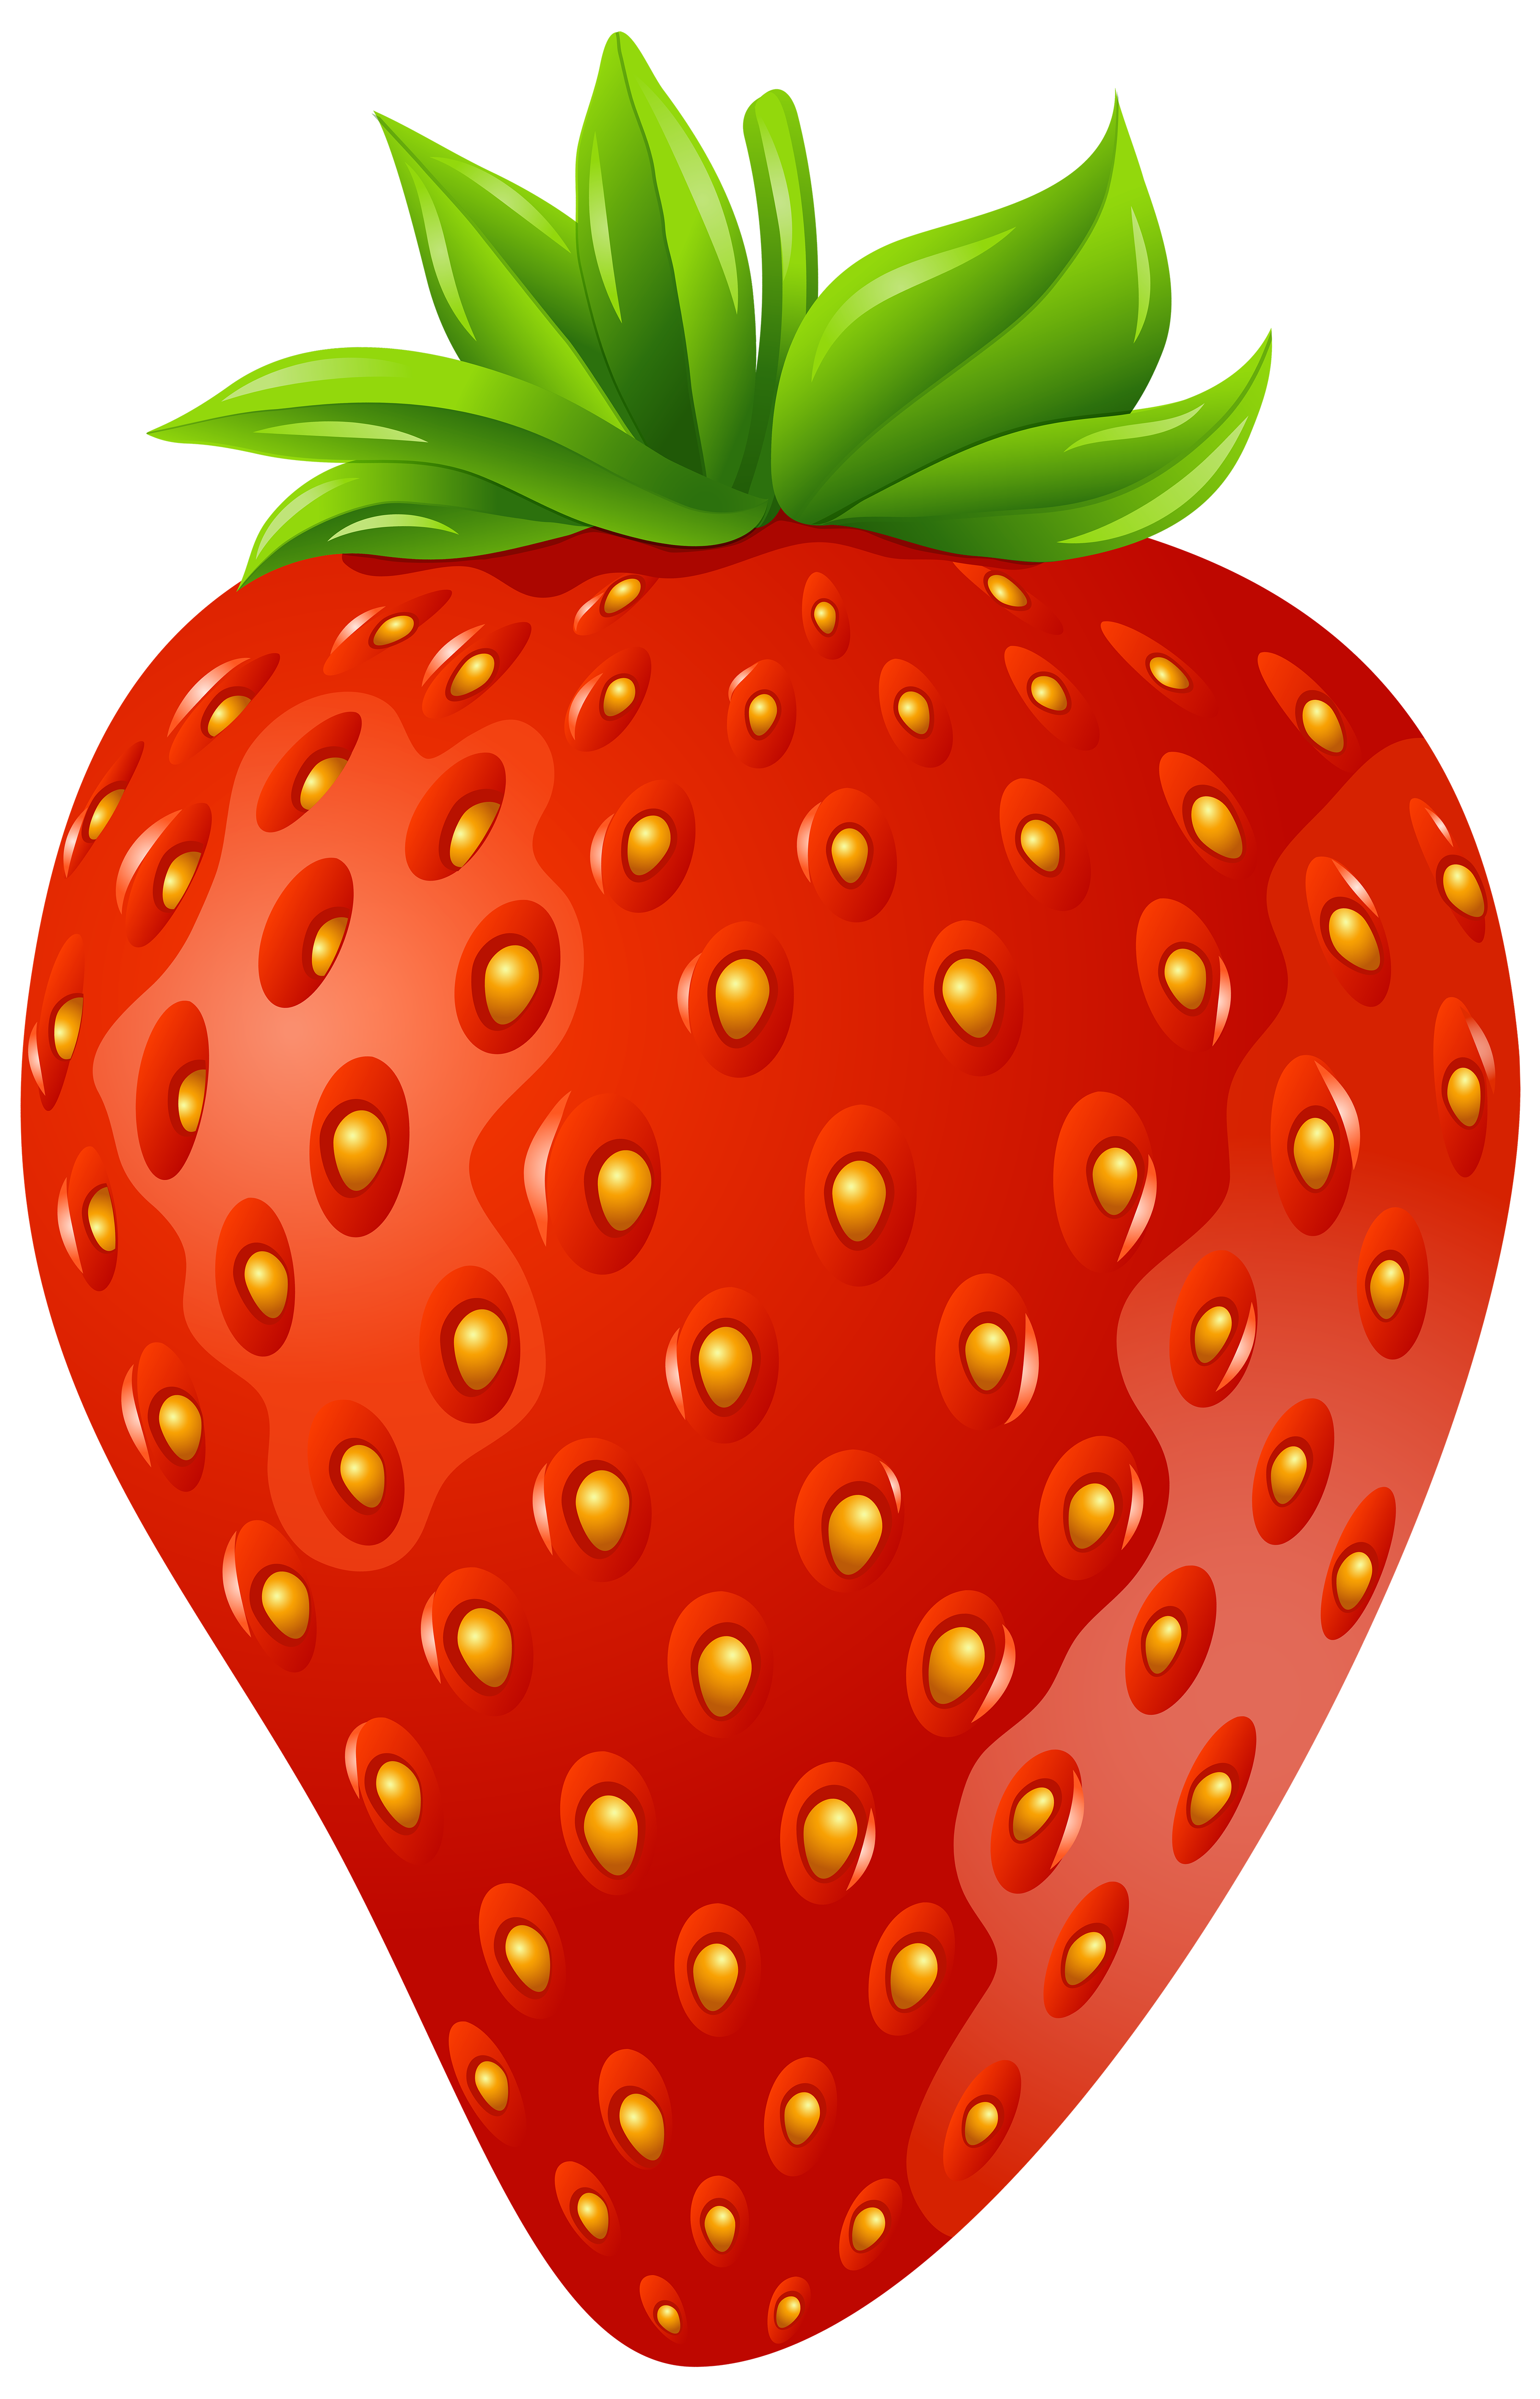 Strawberry clipart #3, Download drawings